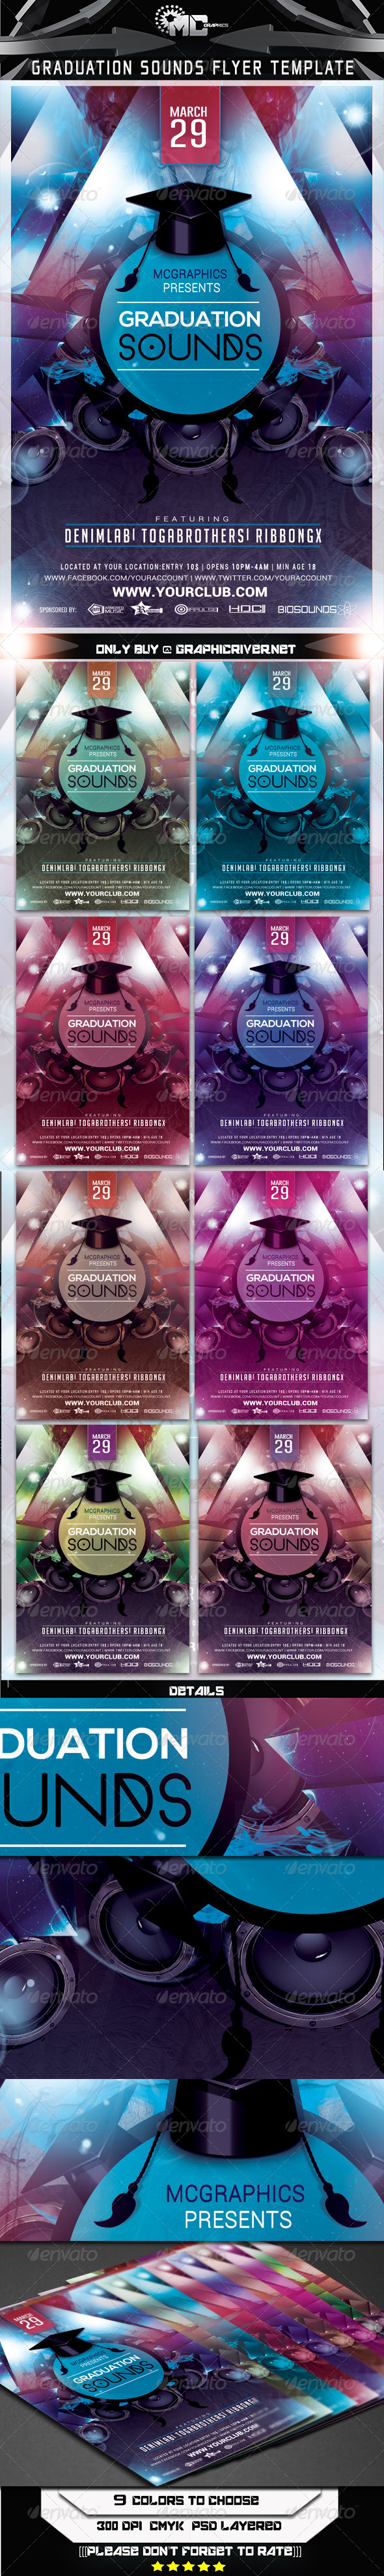 GraphicRiver Graduation Sounds Flyer Template 7187812